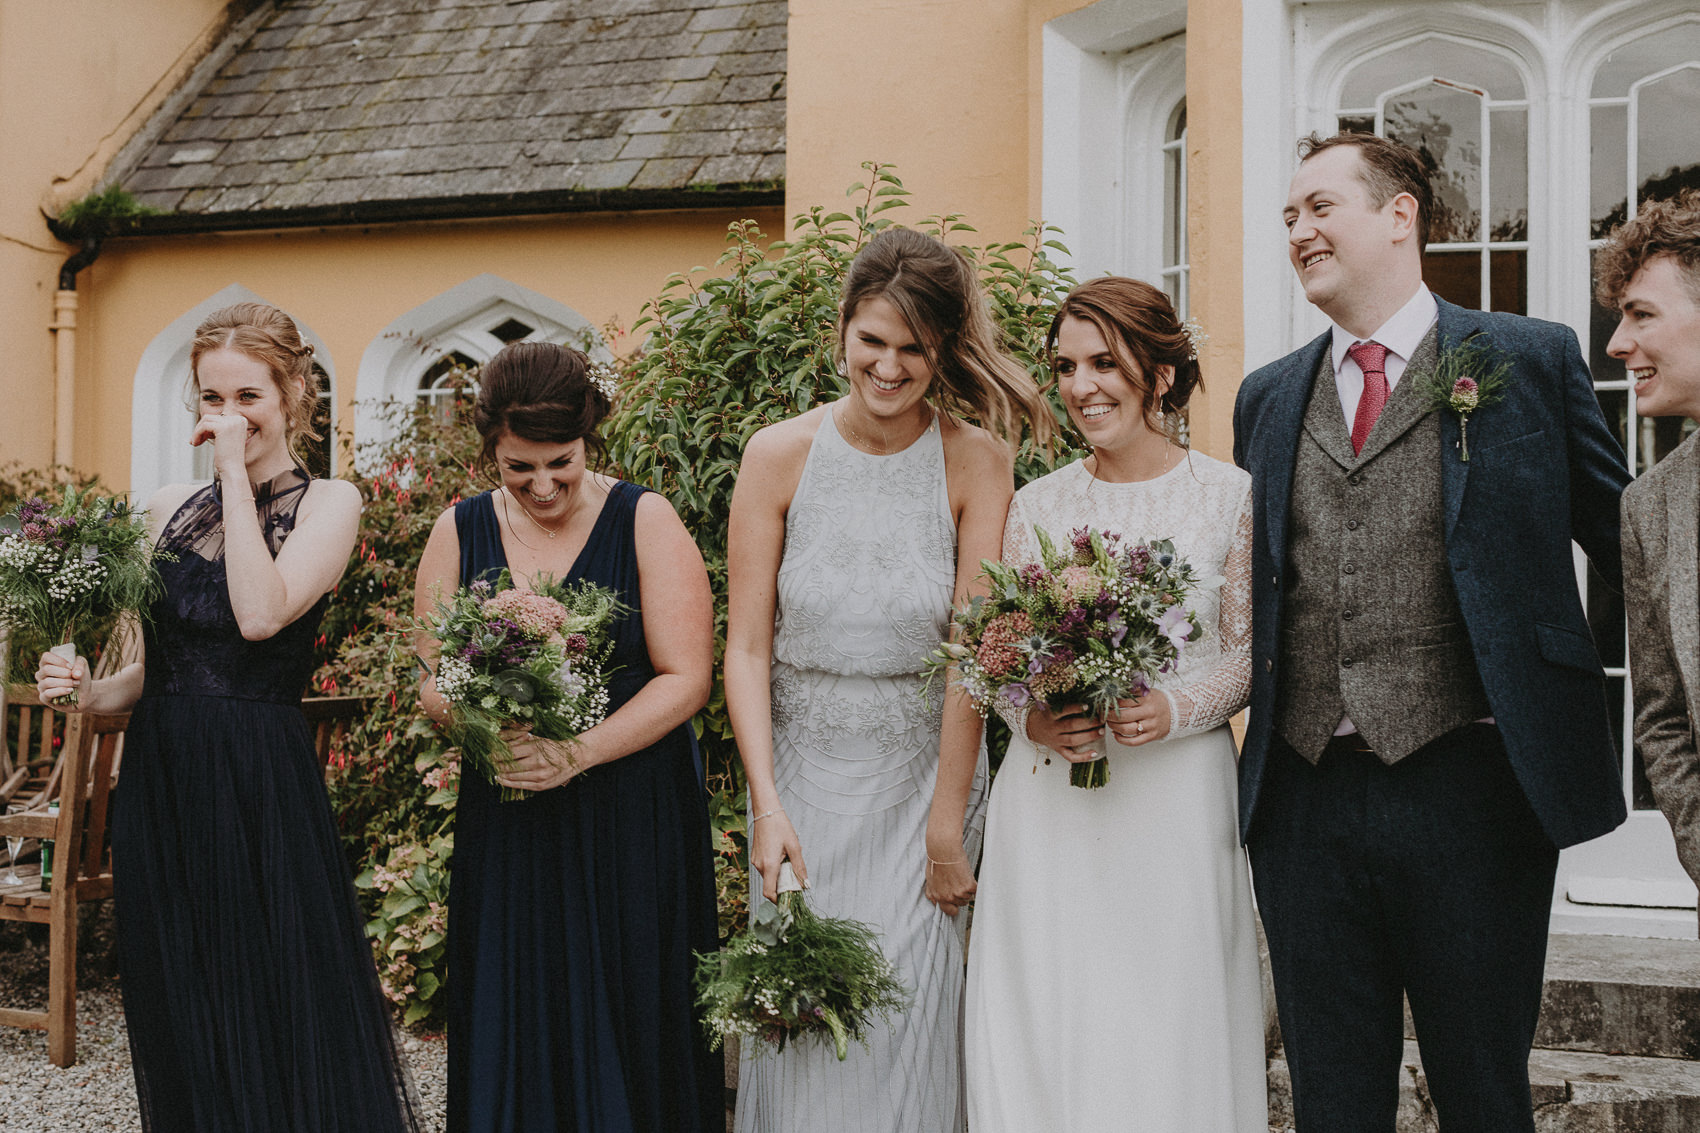 Jessica & Vincent wedding at Martinstown House 123